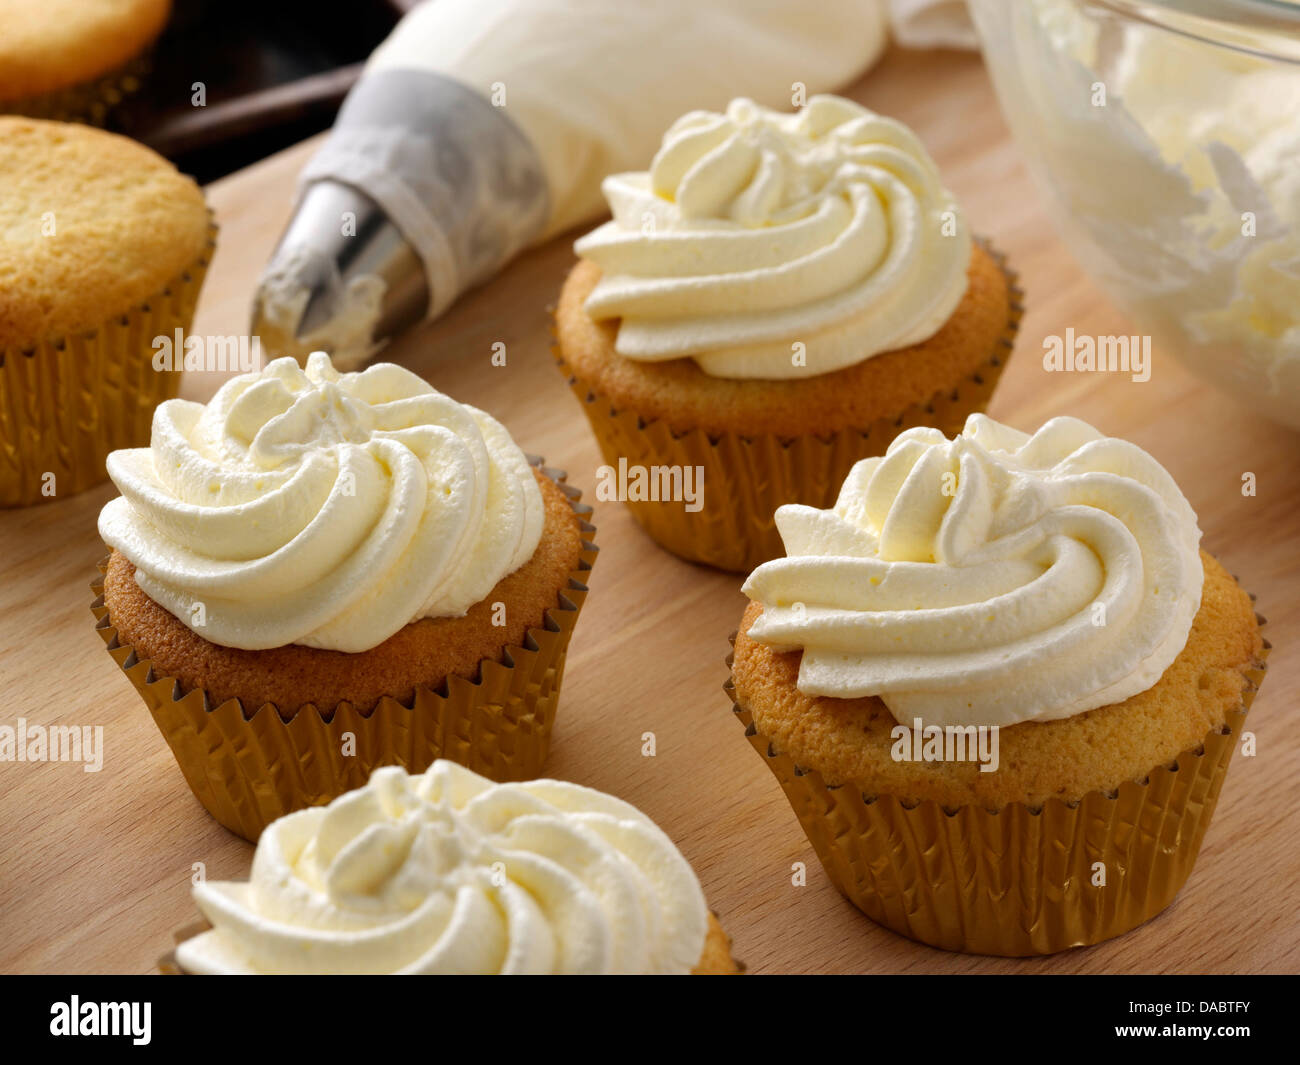 Stevia Vanilla Cupcakes With Cream Cheese Frosting Stock Photo ...